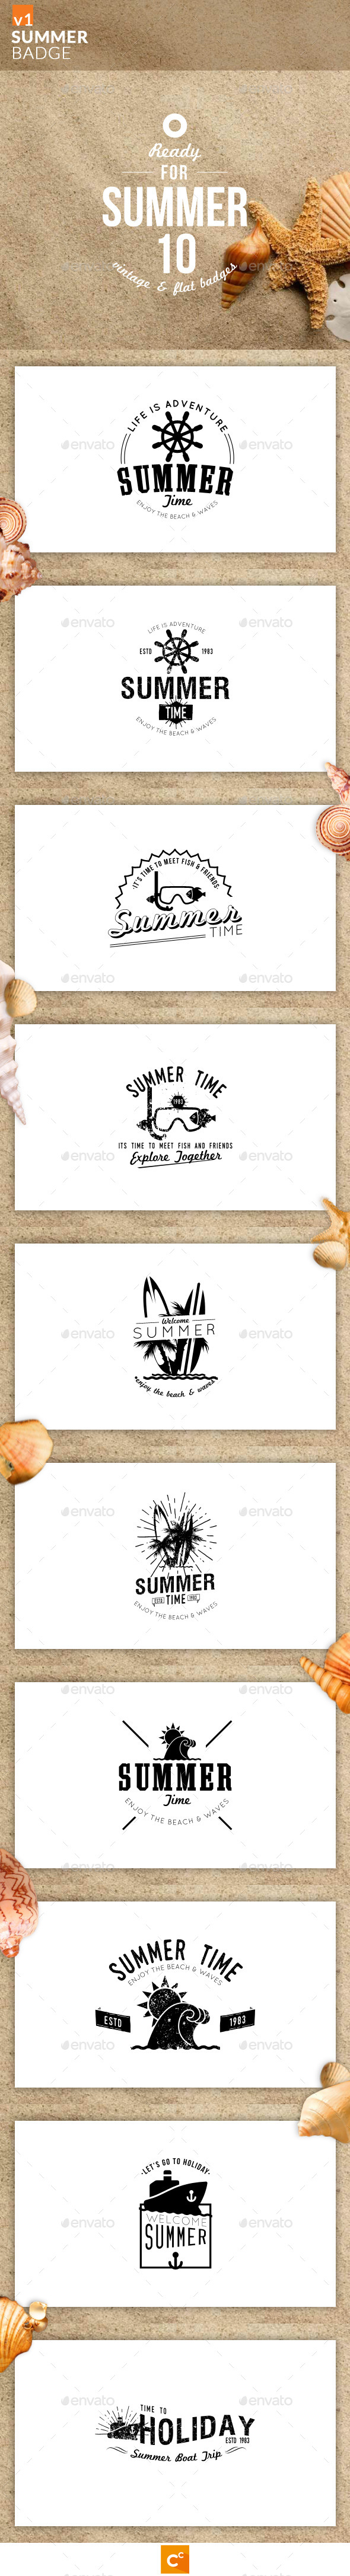 GraphicRiver Summer Badge 10760024